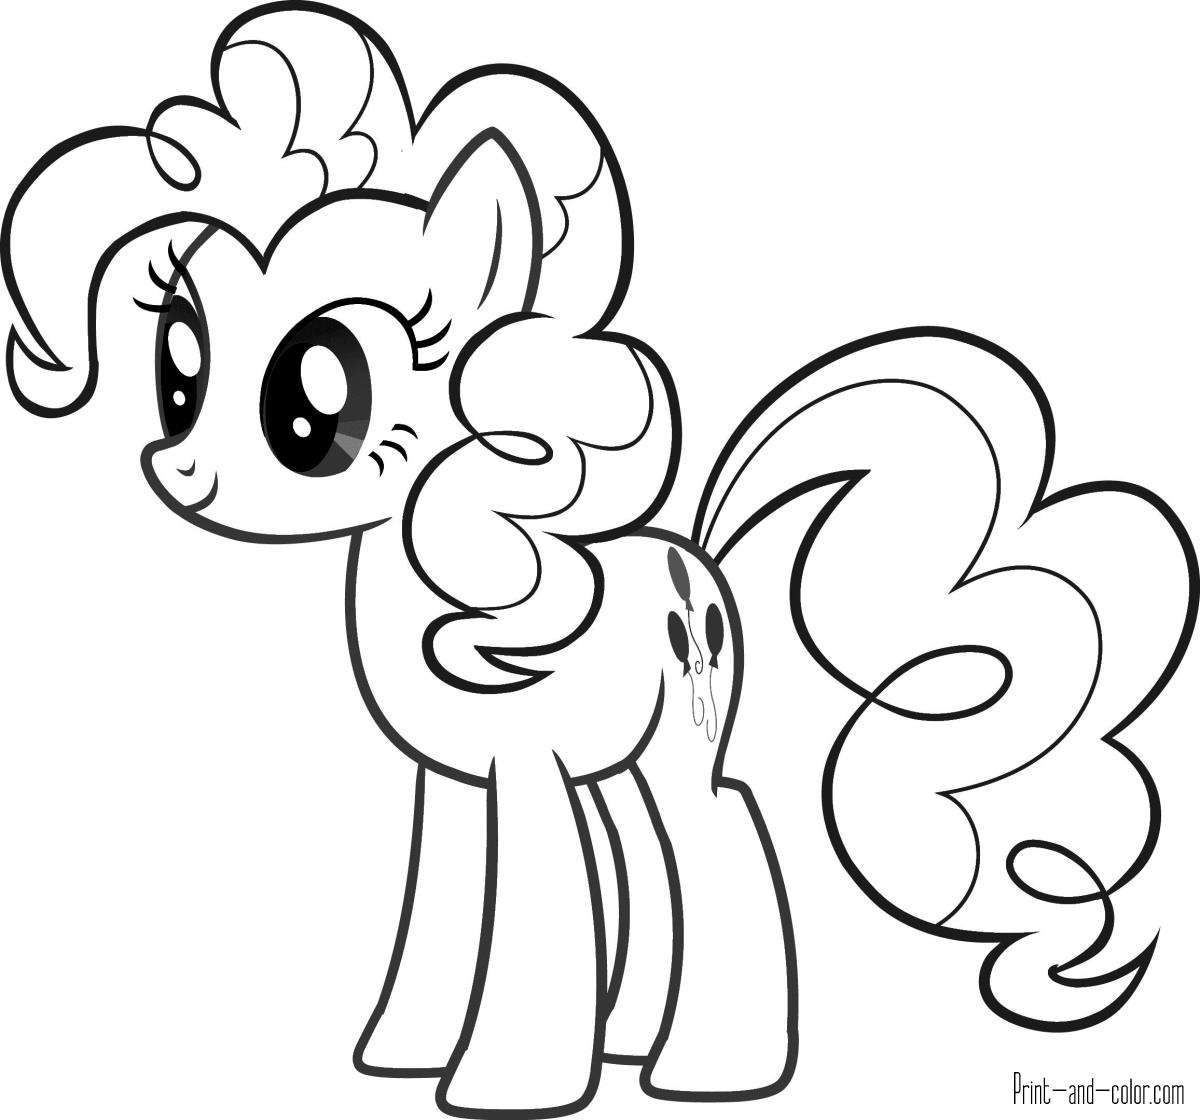 pony coloring pictures my little pony coloring pages print and colorcom coloring pony pictures